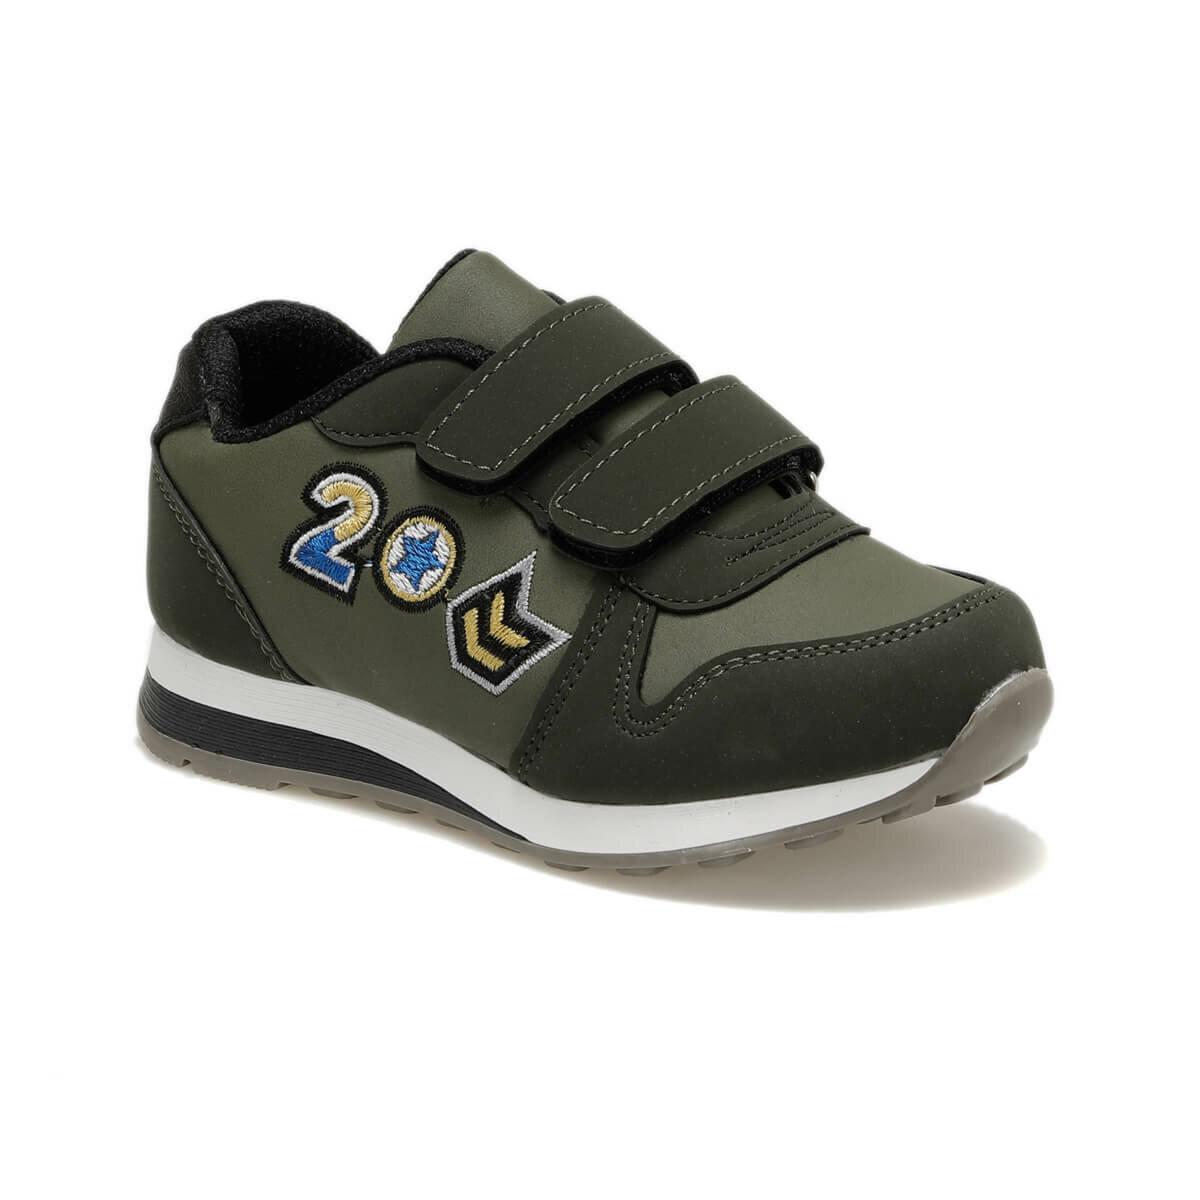 FLO 92.510814.P Khaki Male Child Sports Shoes Polaris